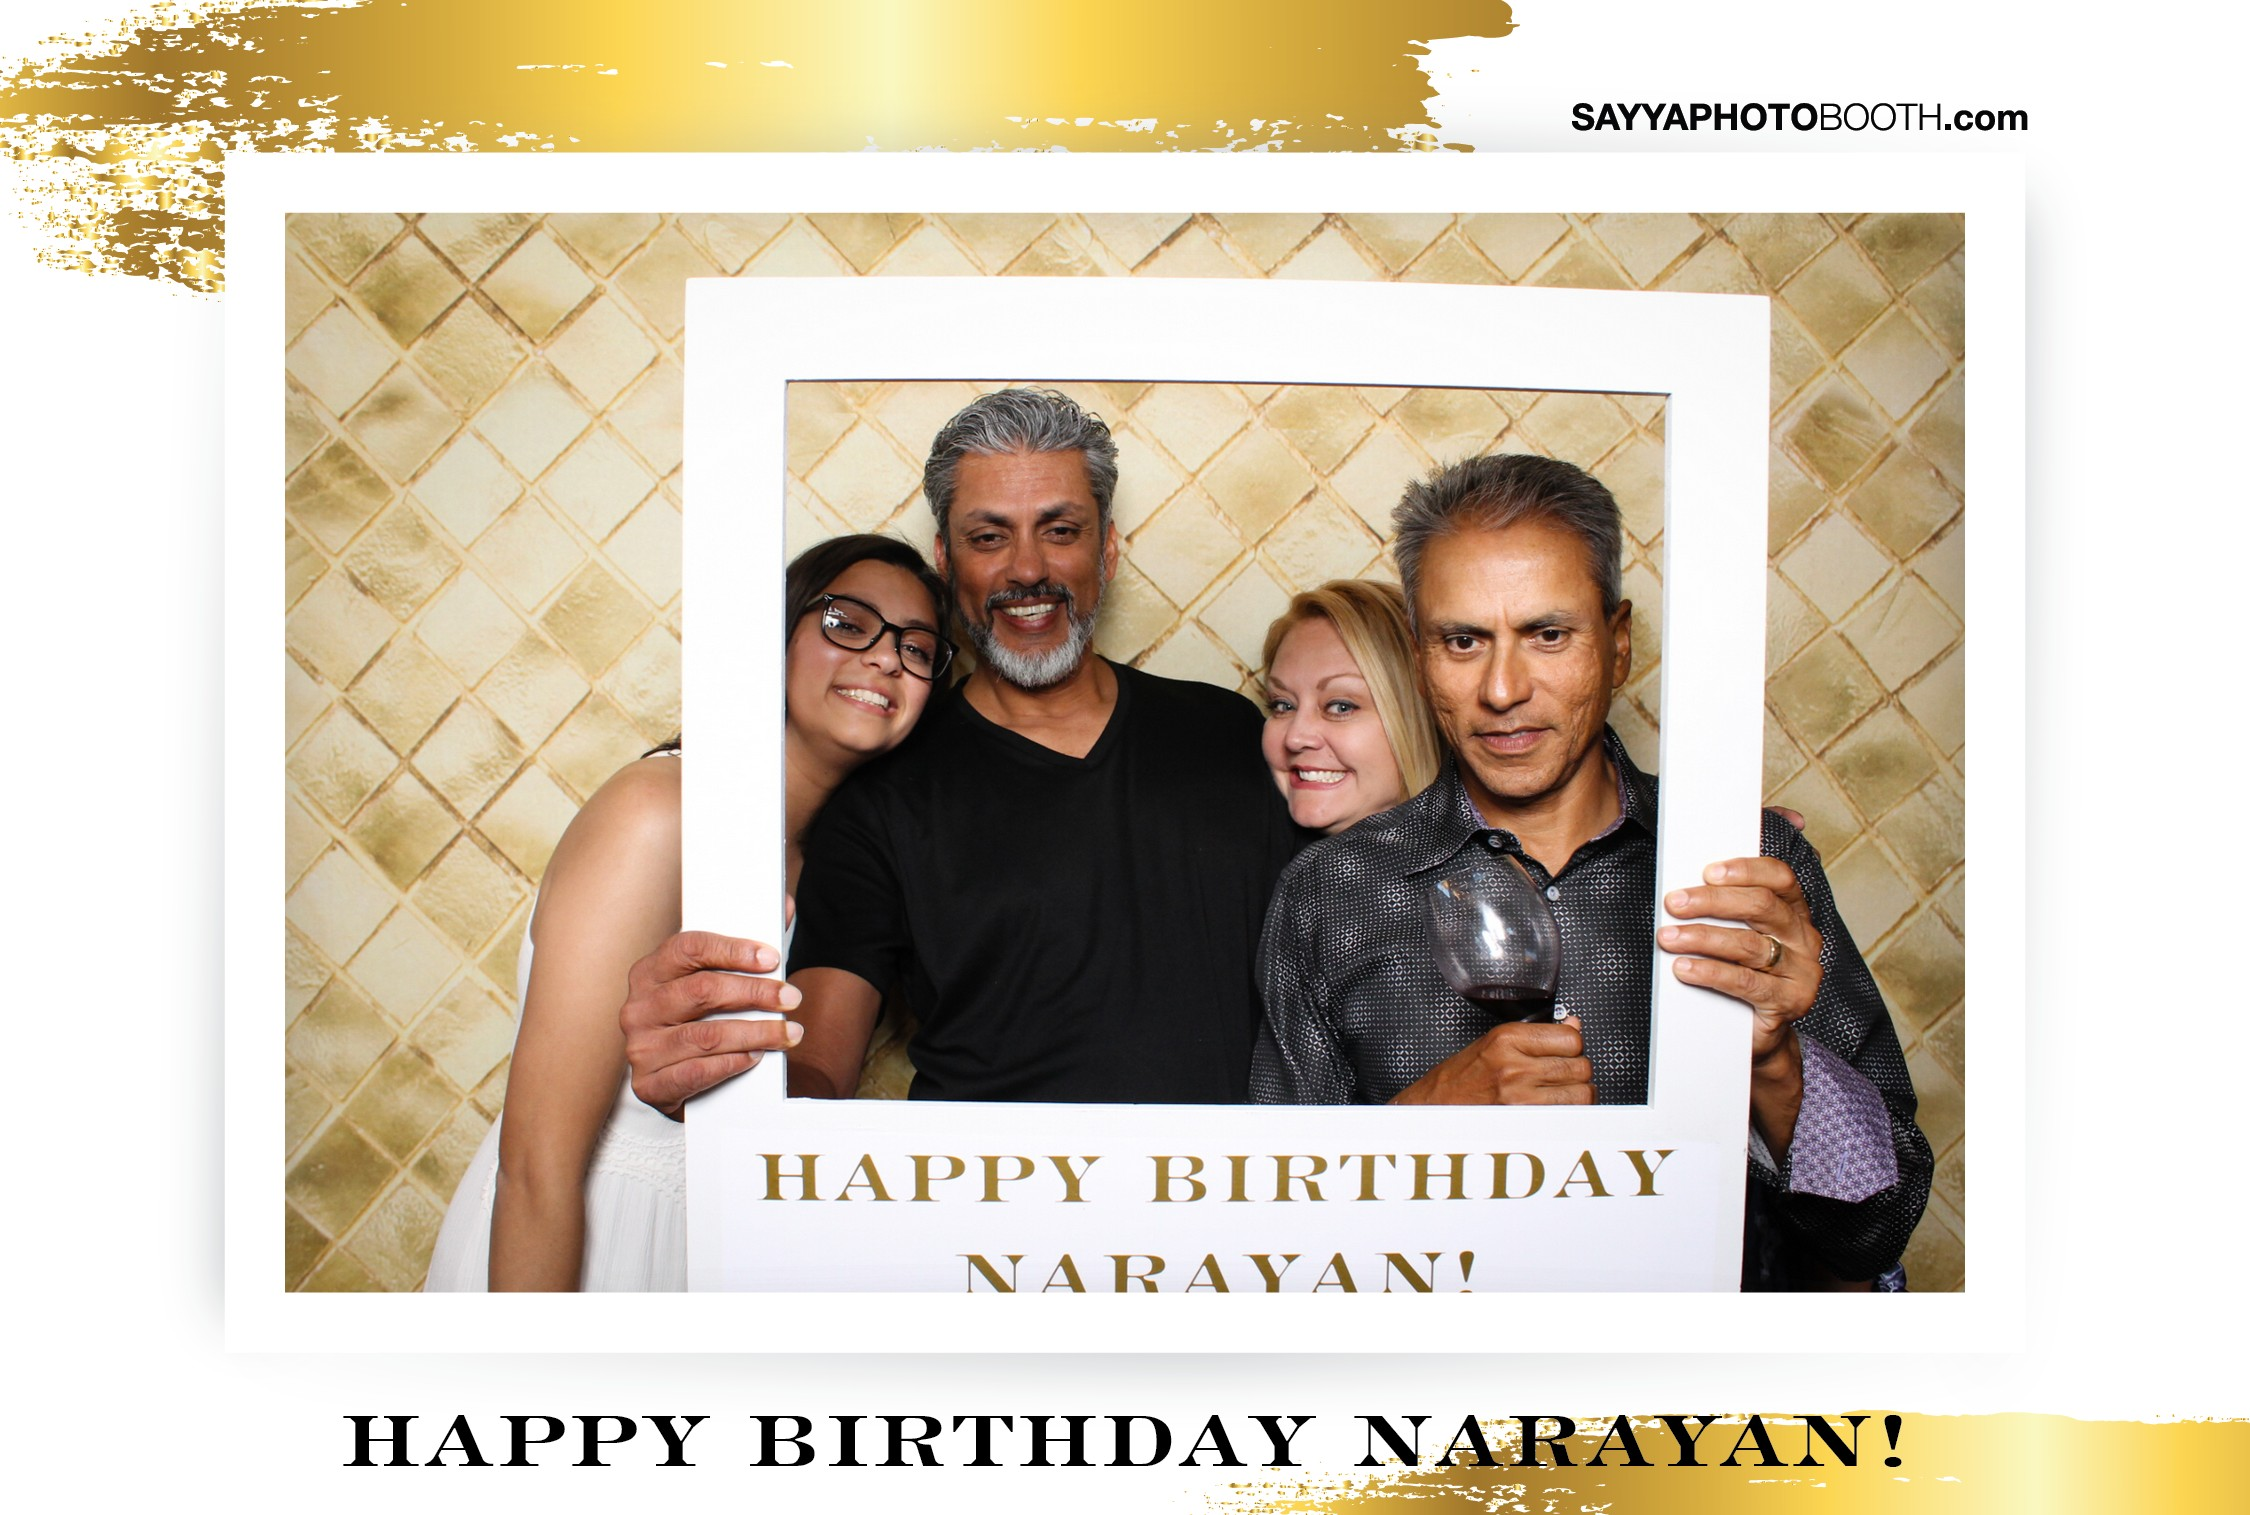 Narayan's Birthday